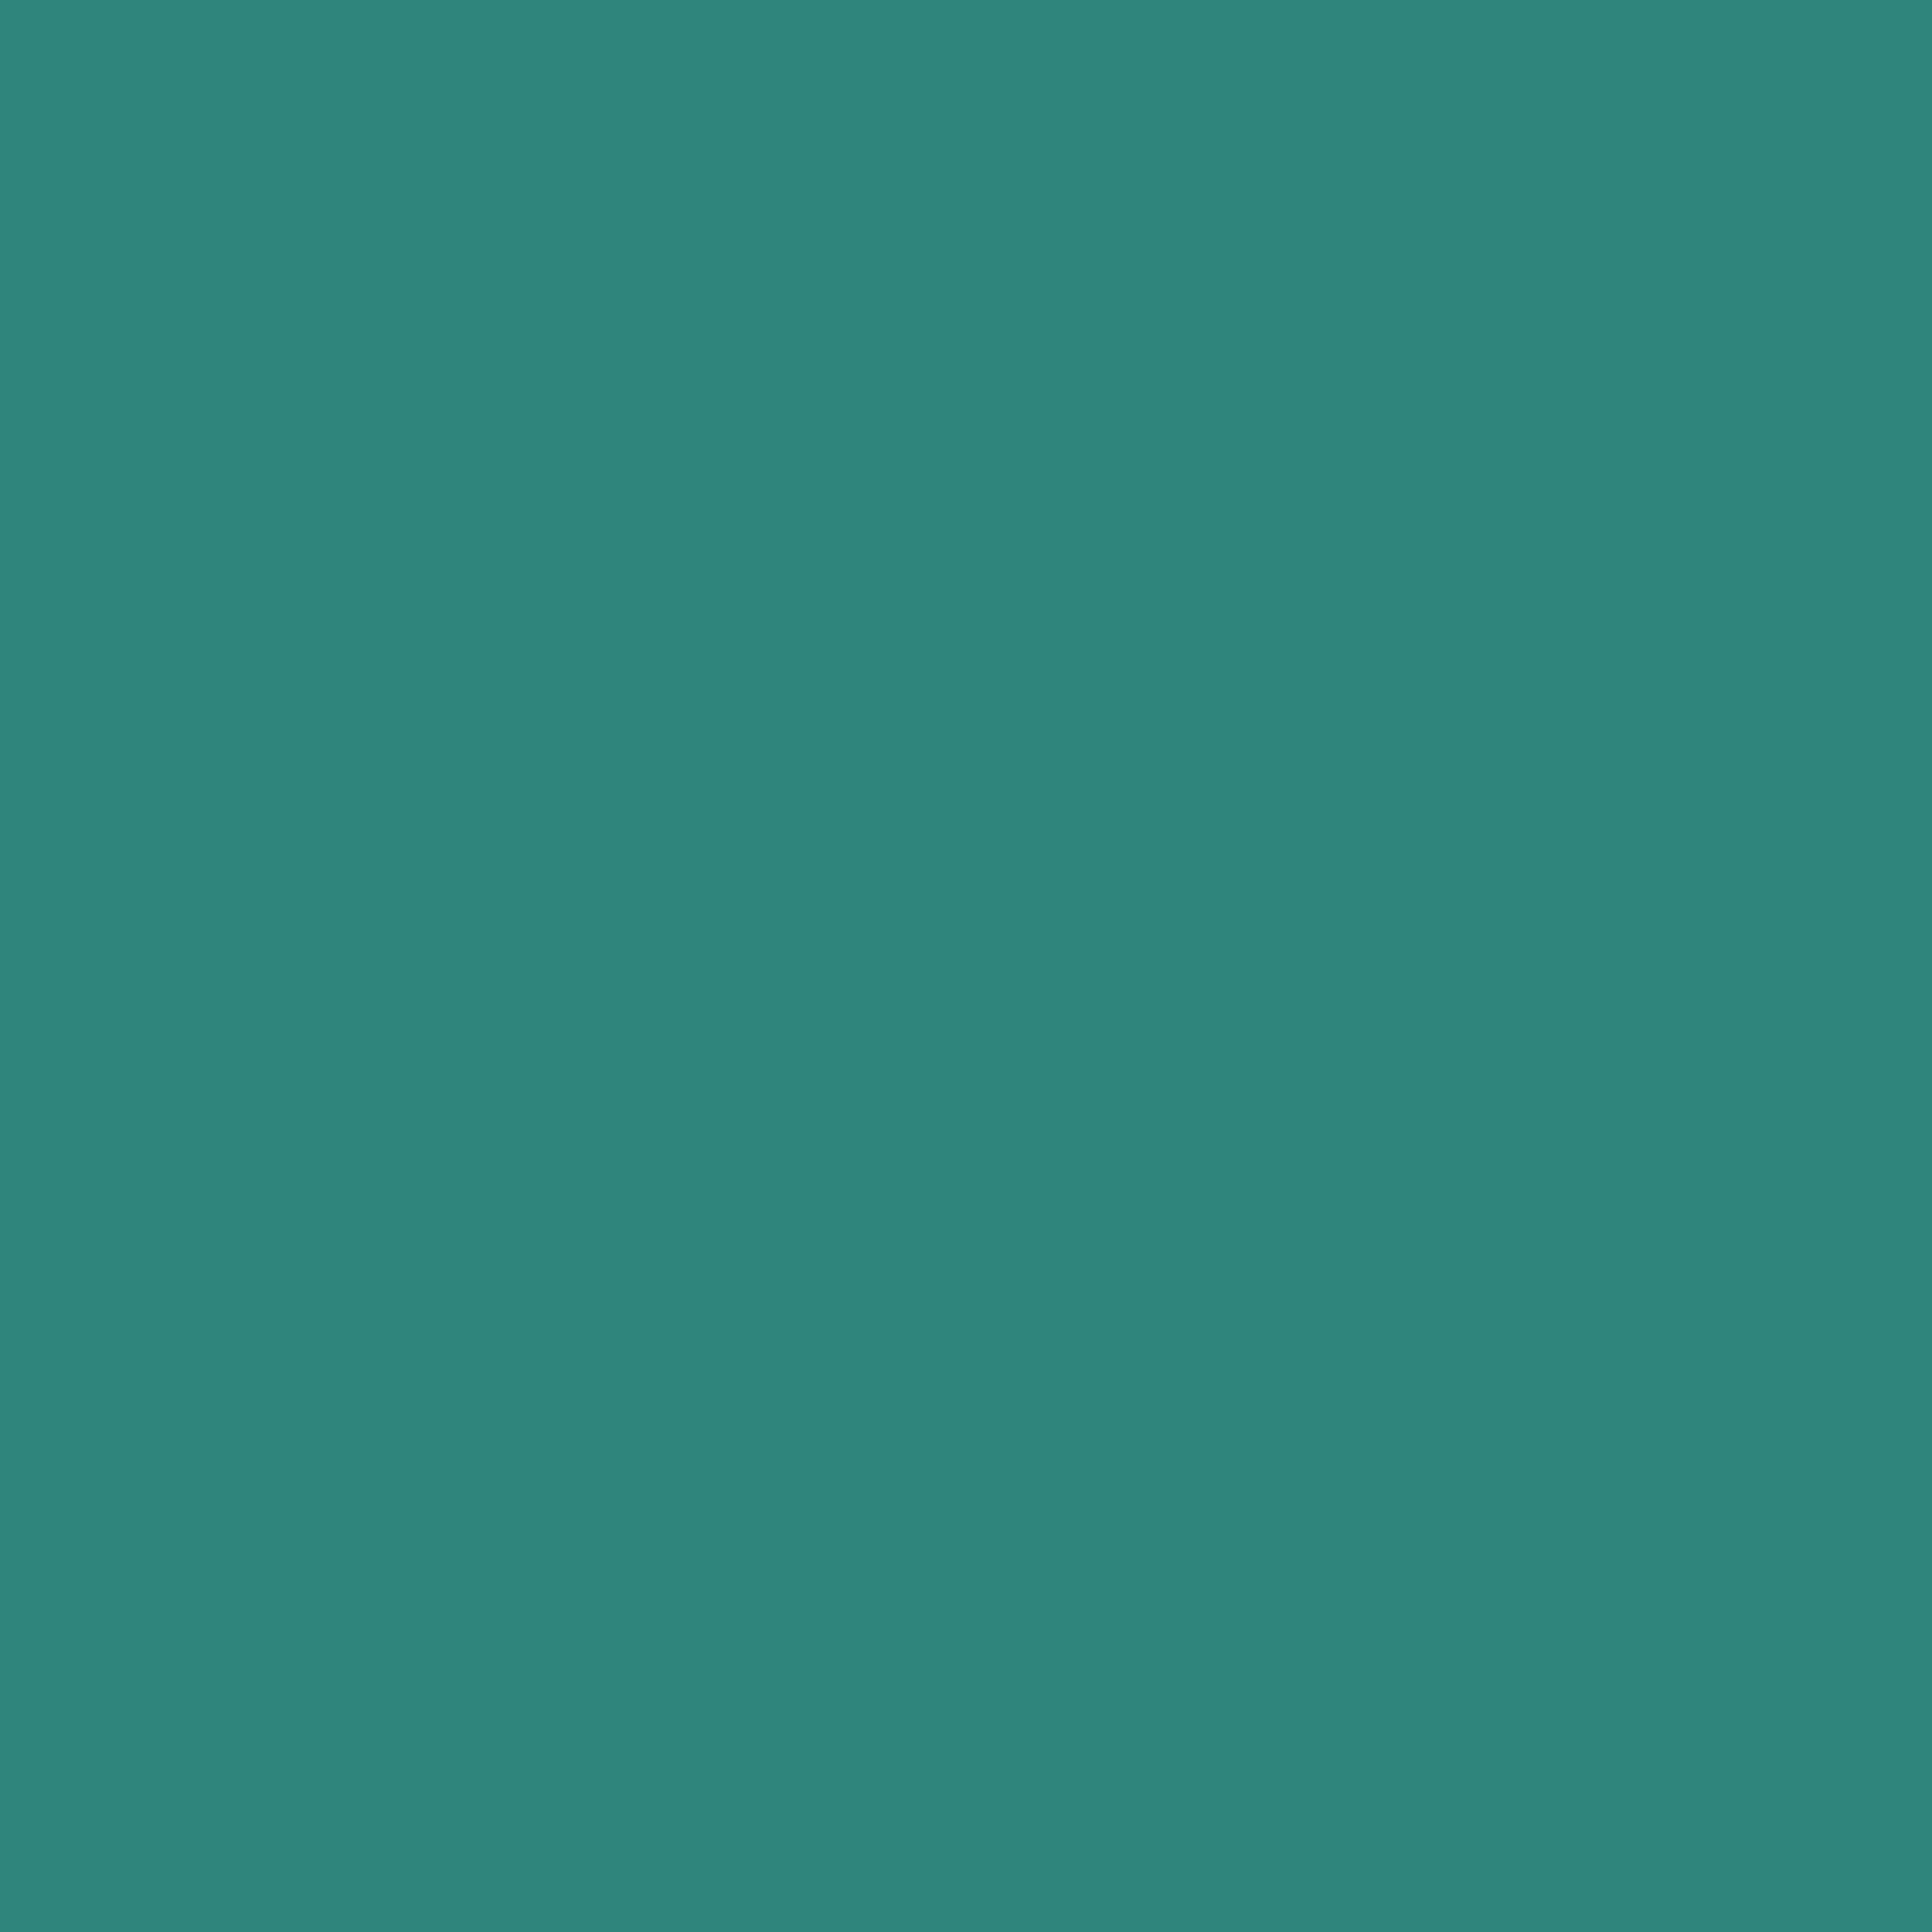 2732x2732 Celadon Green Solid Color Background